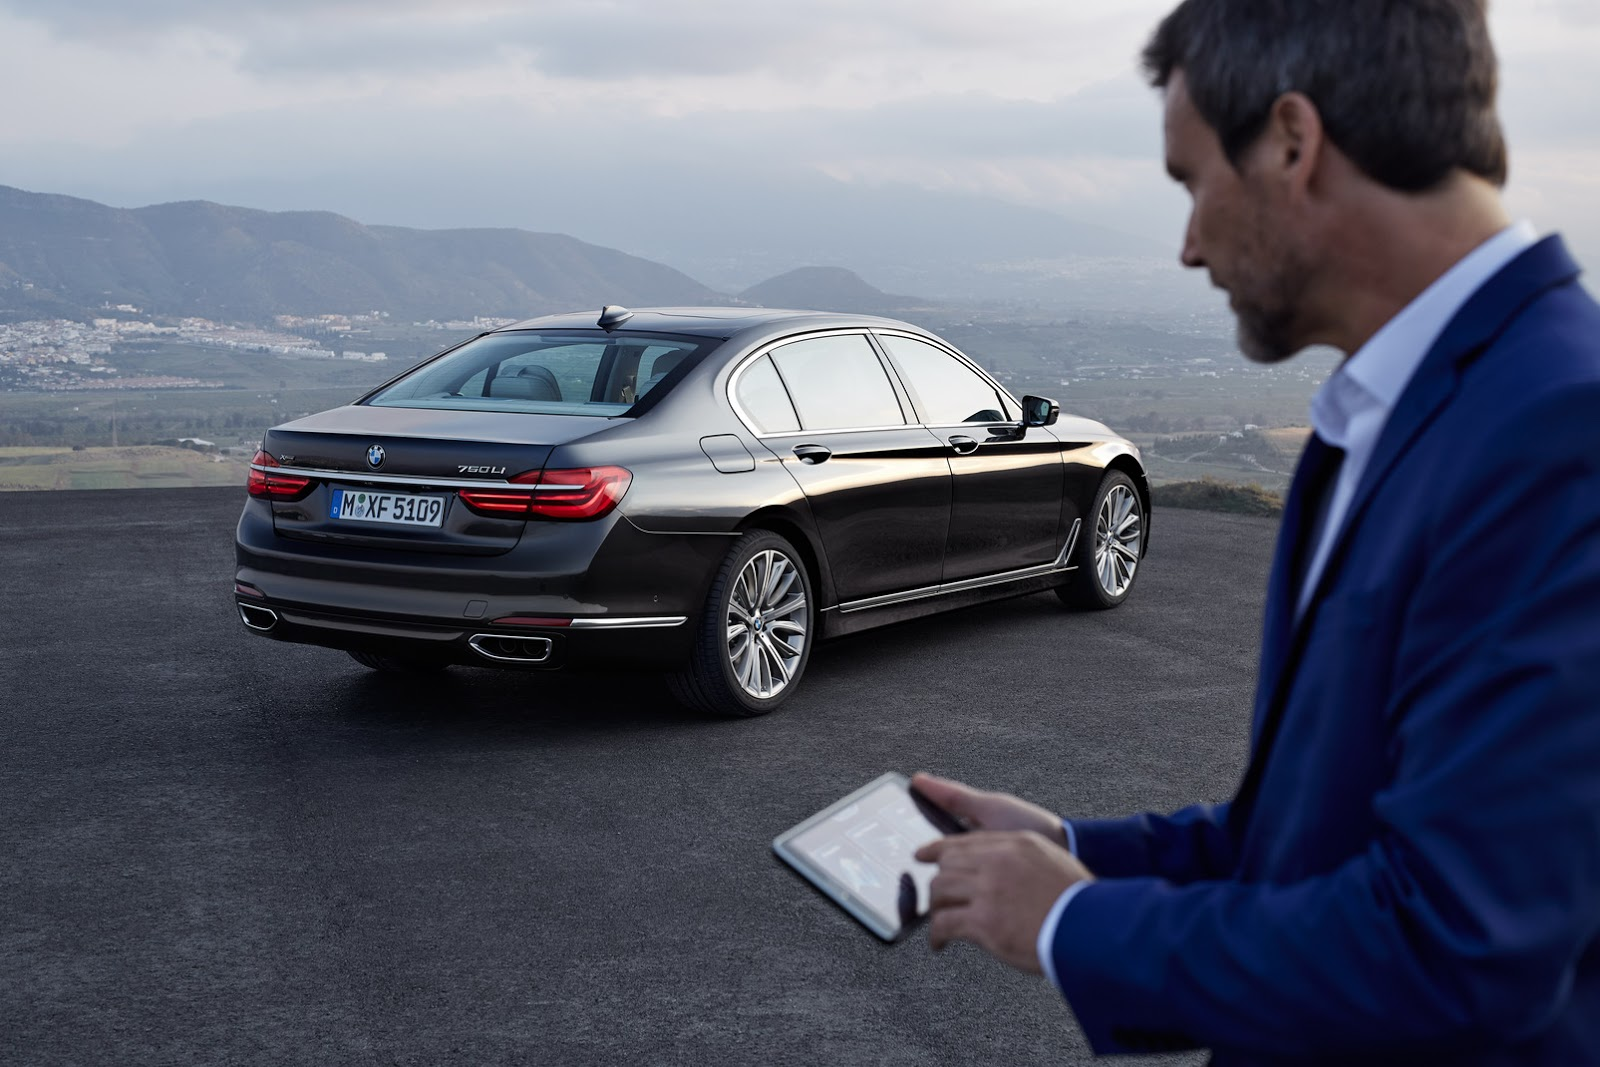 New BMW 7 Series Has A Super Cool Key Fob With Digital Display